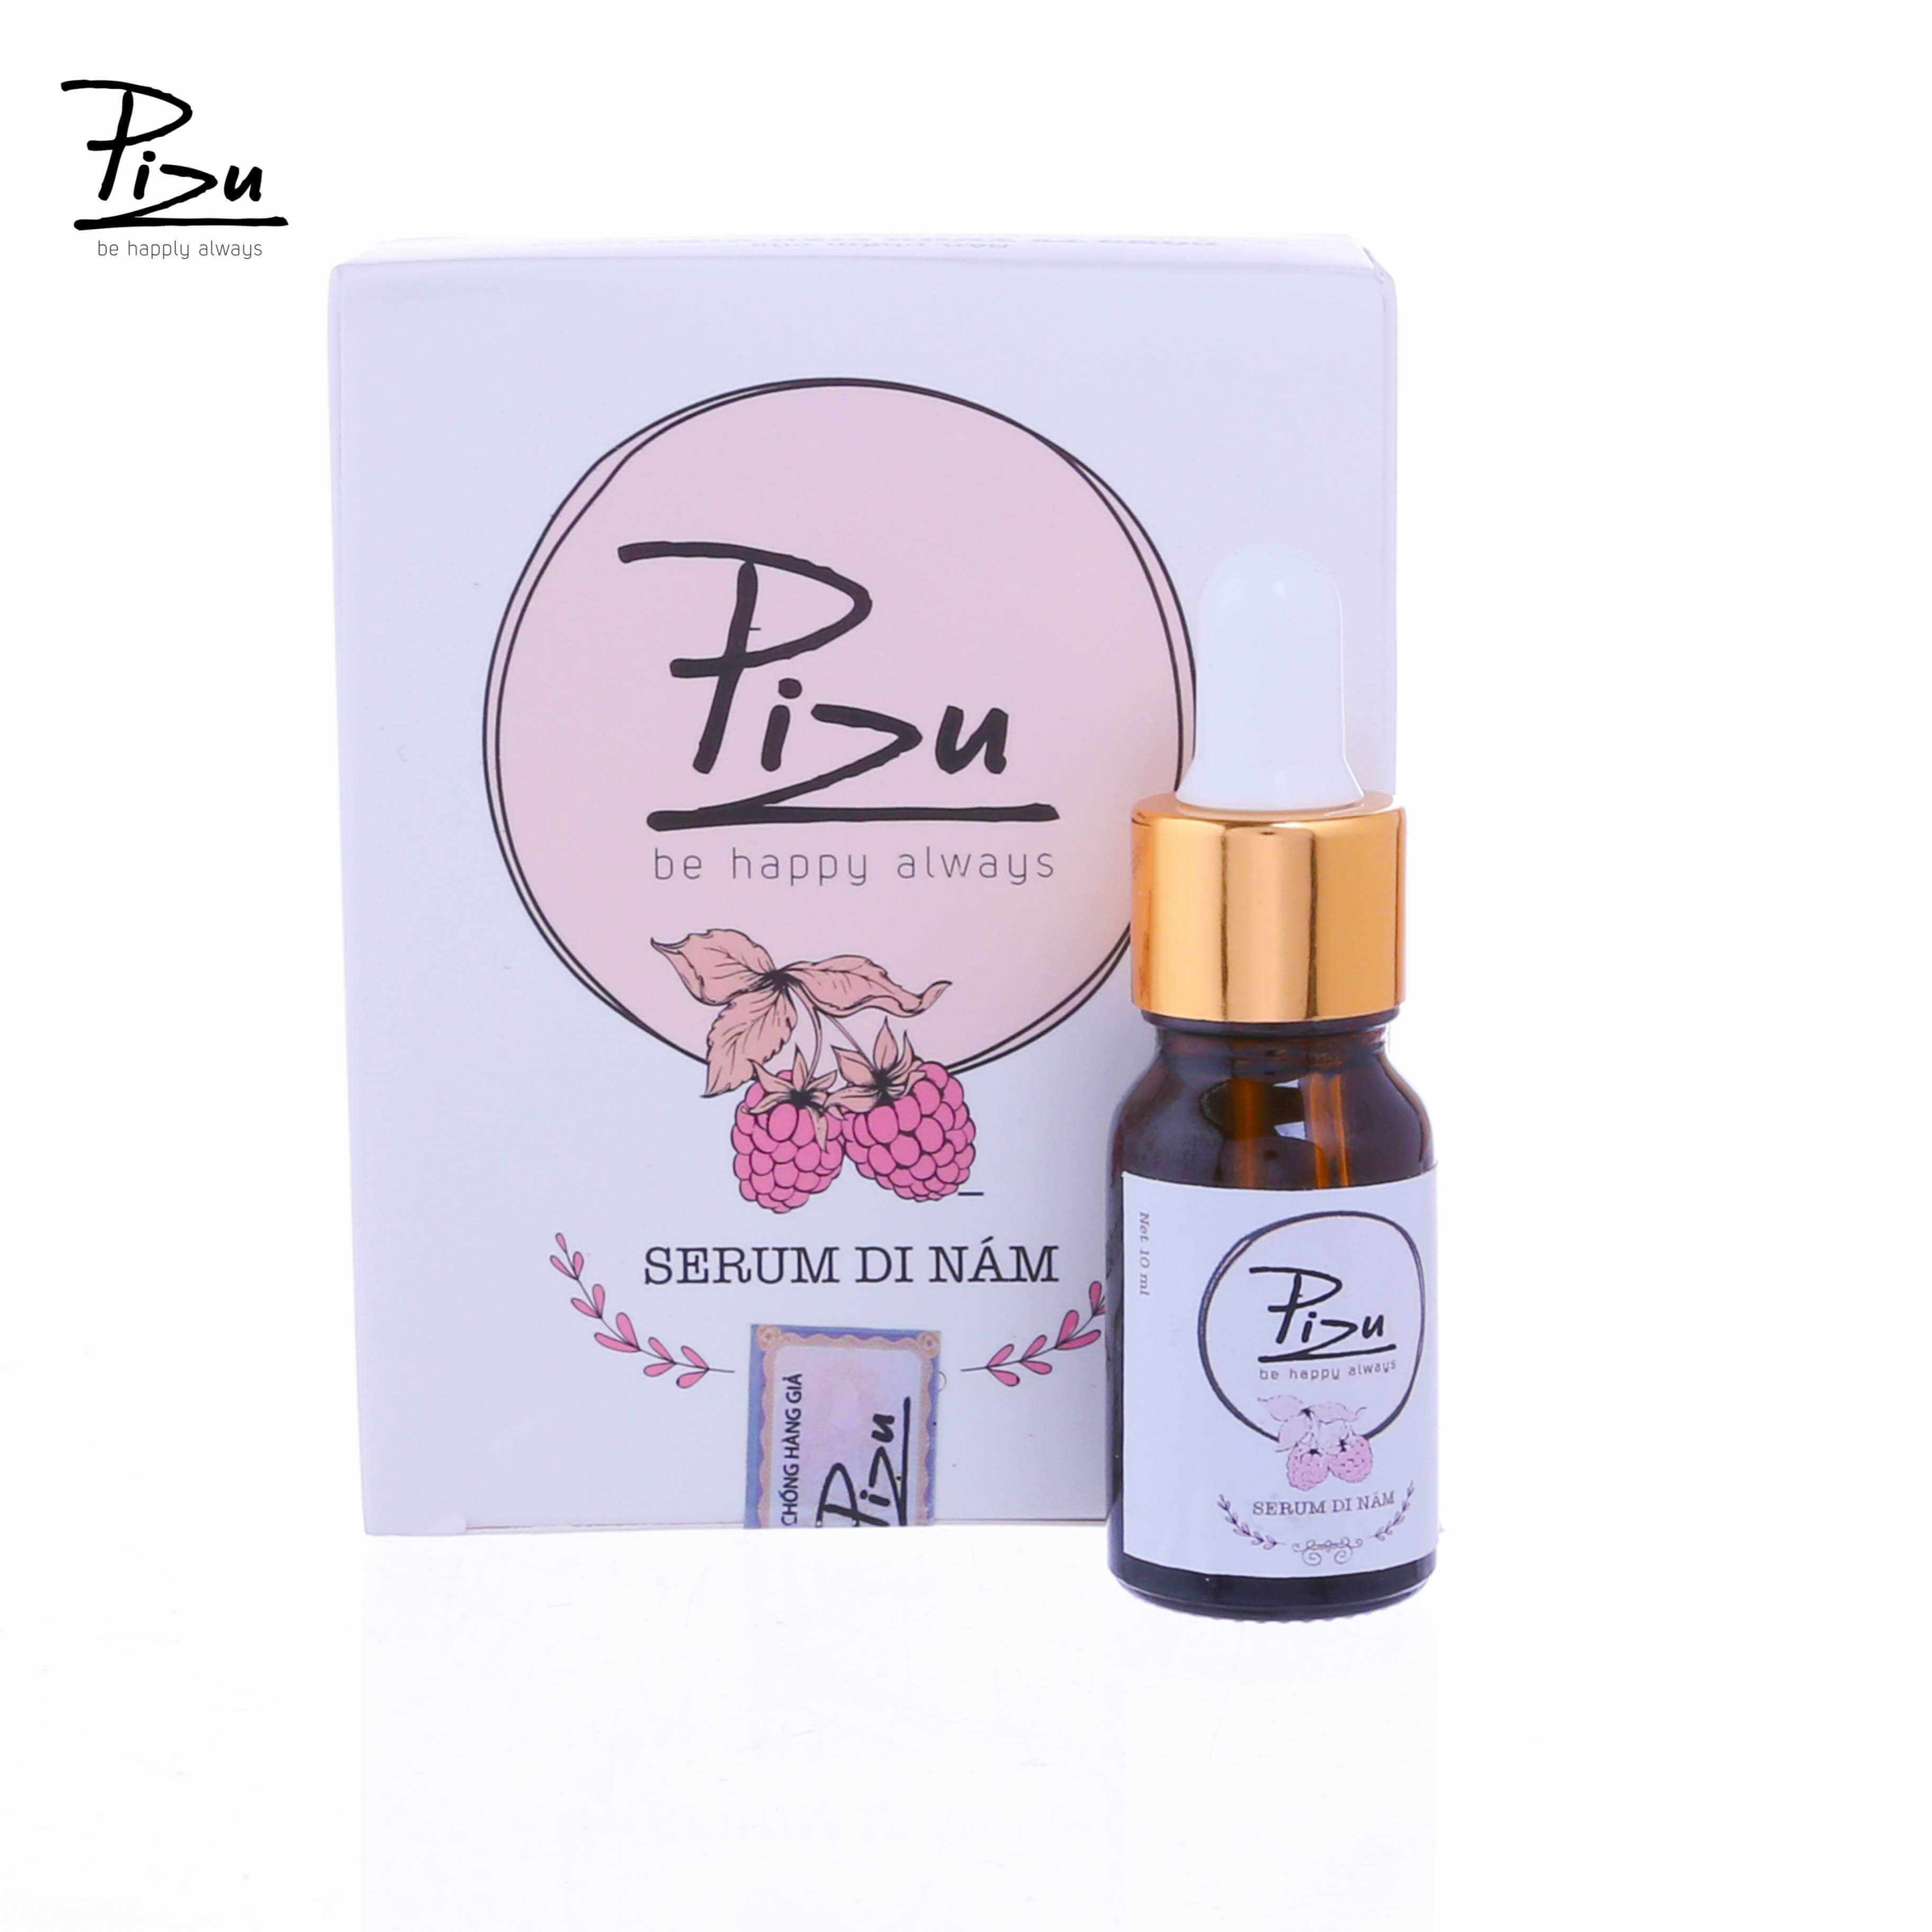 Serum di nám 10ml